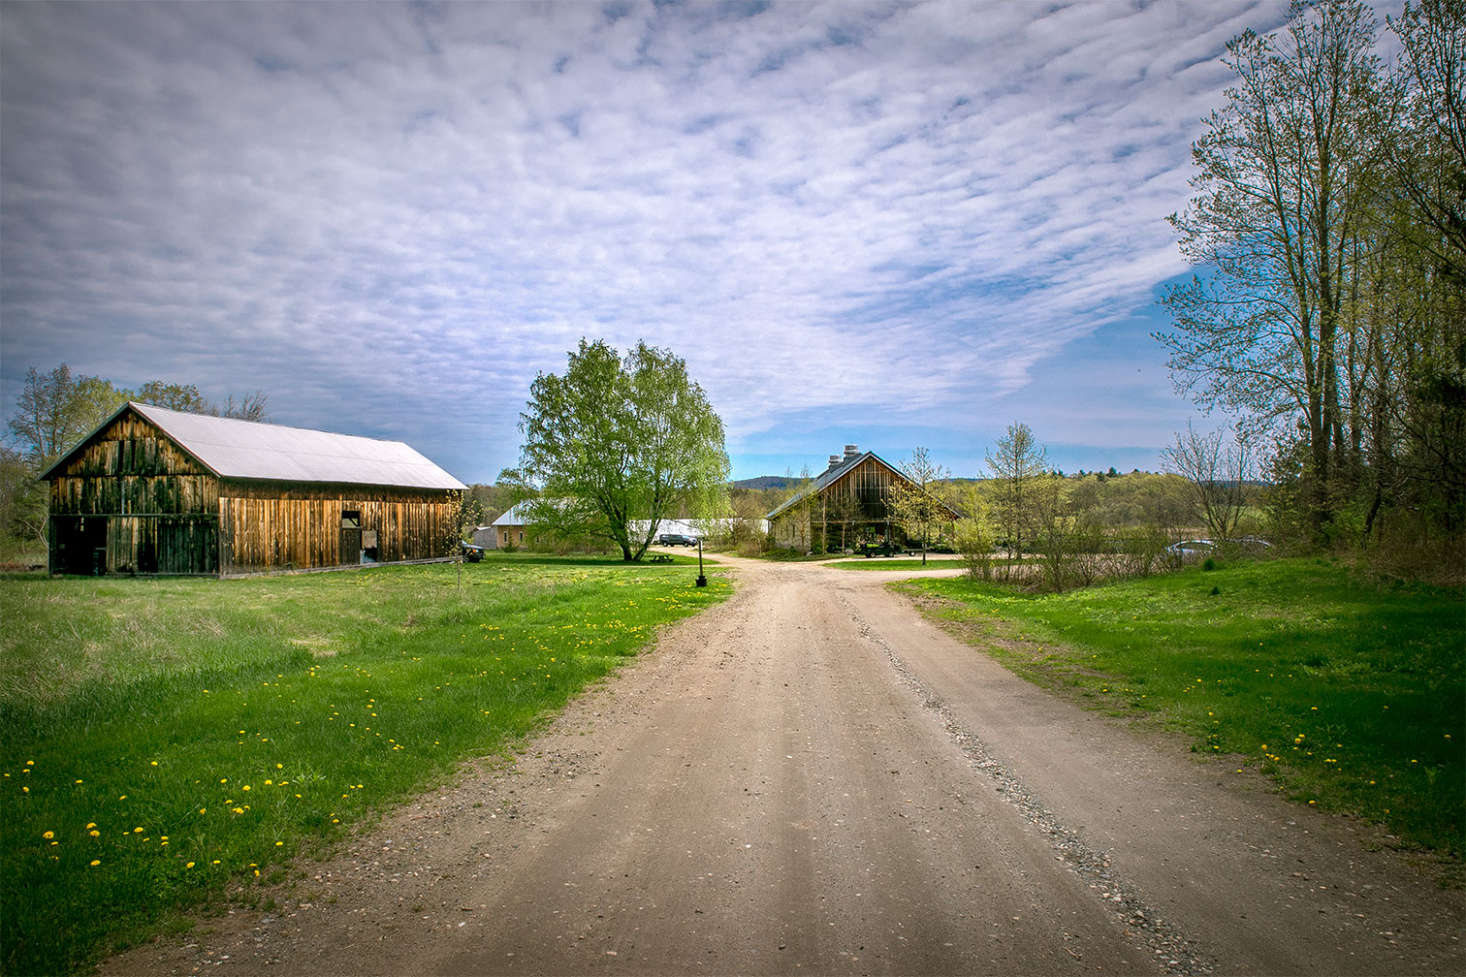 Located in Whately, Massachusetts, Nasami Farms is situated on 40 acres of bucolic farmland.